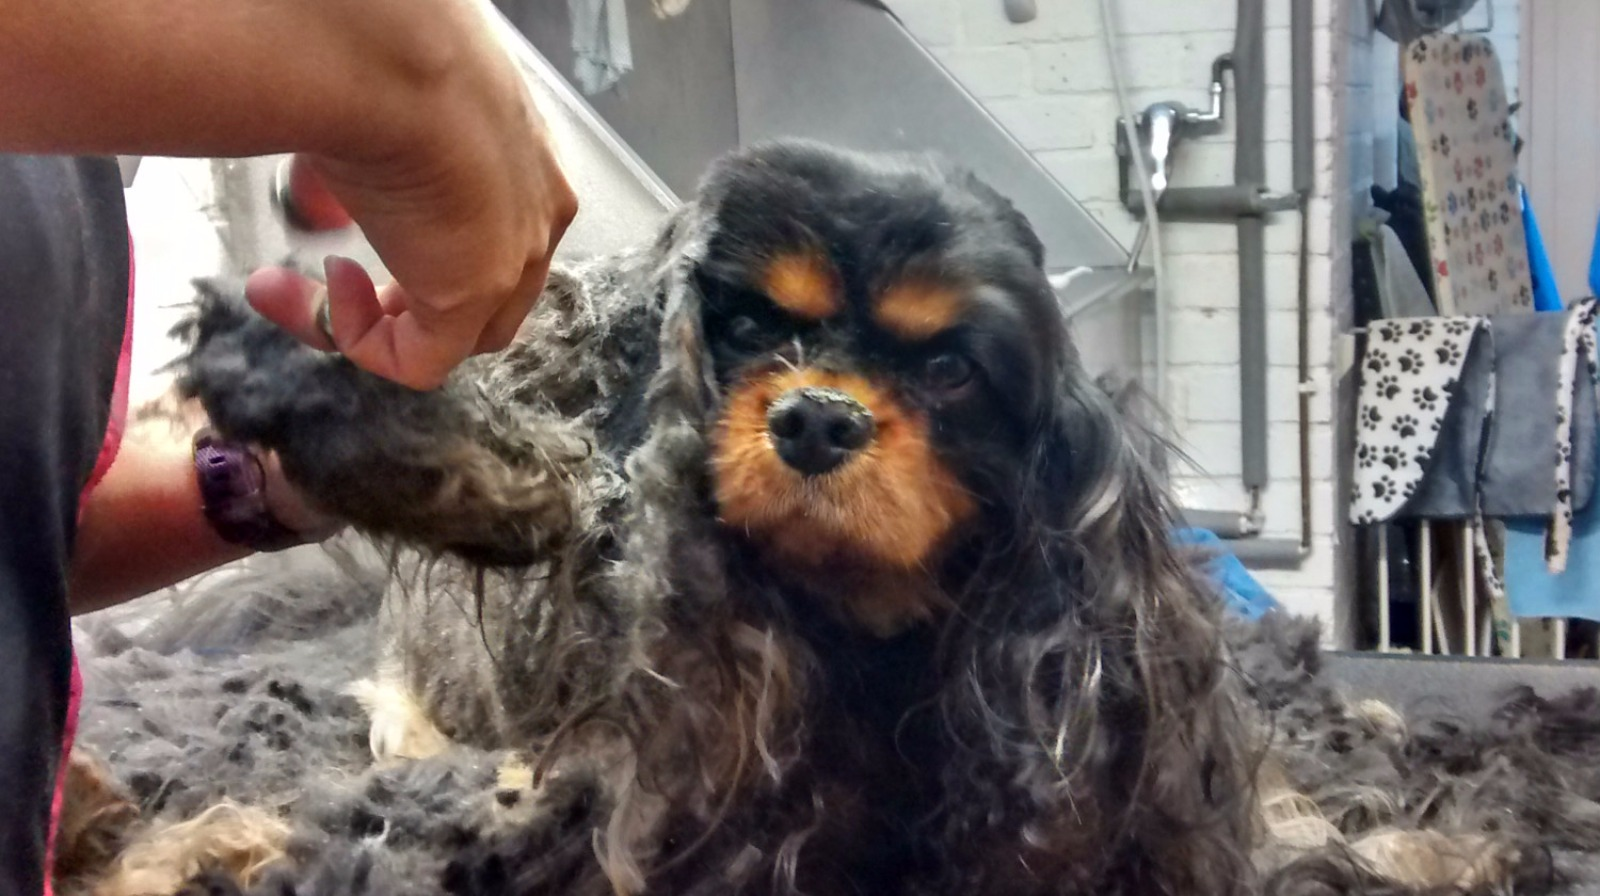 Rspca Warning Over The Importance Of Grooming As Dog Gets Much